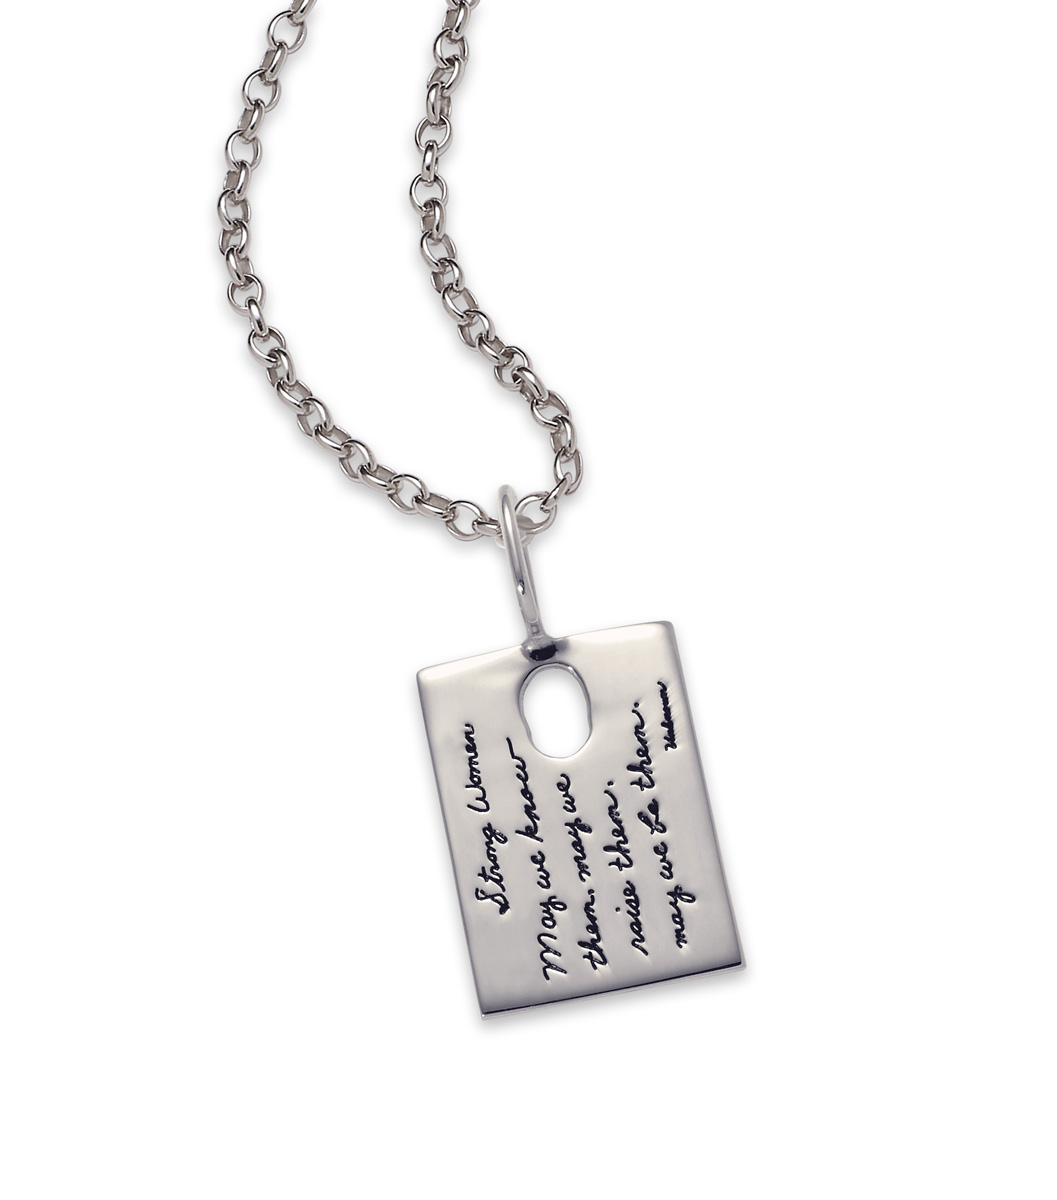 Bb becker inspirational jewelry strong women pendant sterling silver inspirational pendant rectangle shape with a small oval cutout near the top quote reads mozeypictures Choice Image